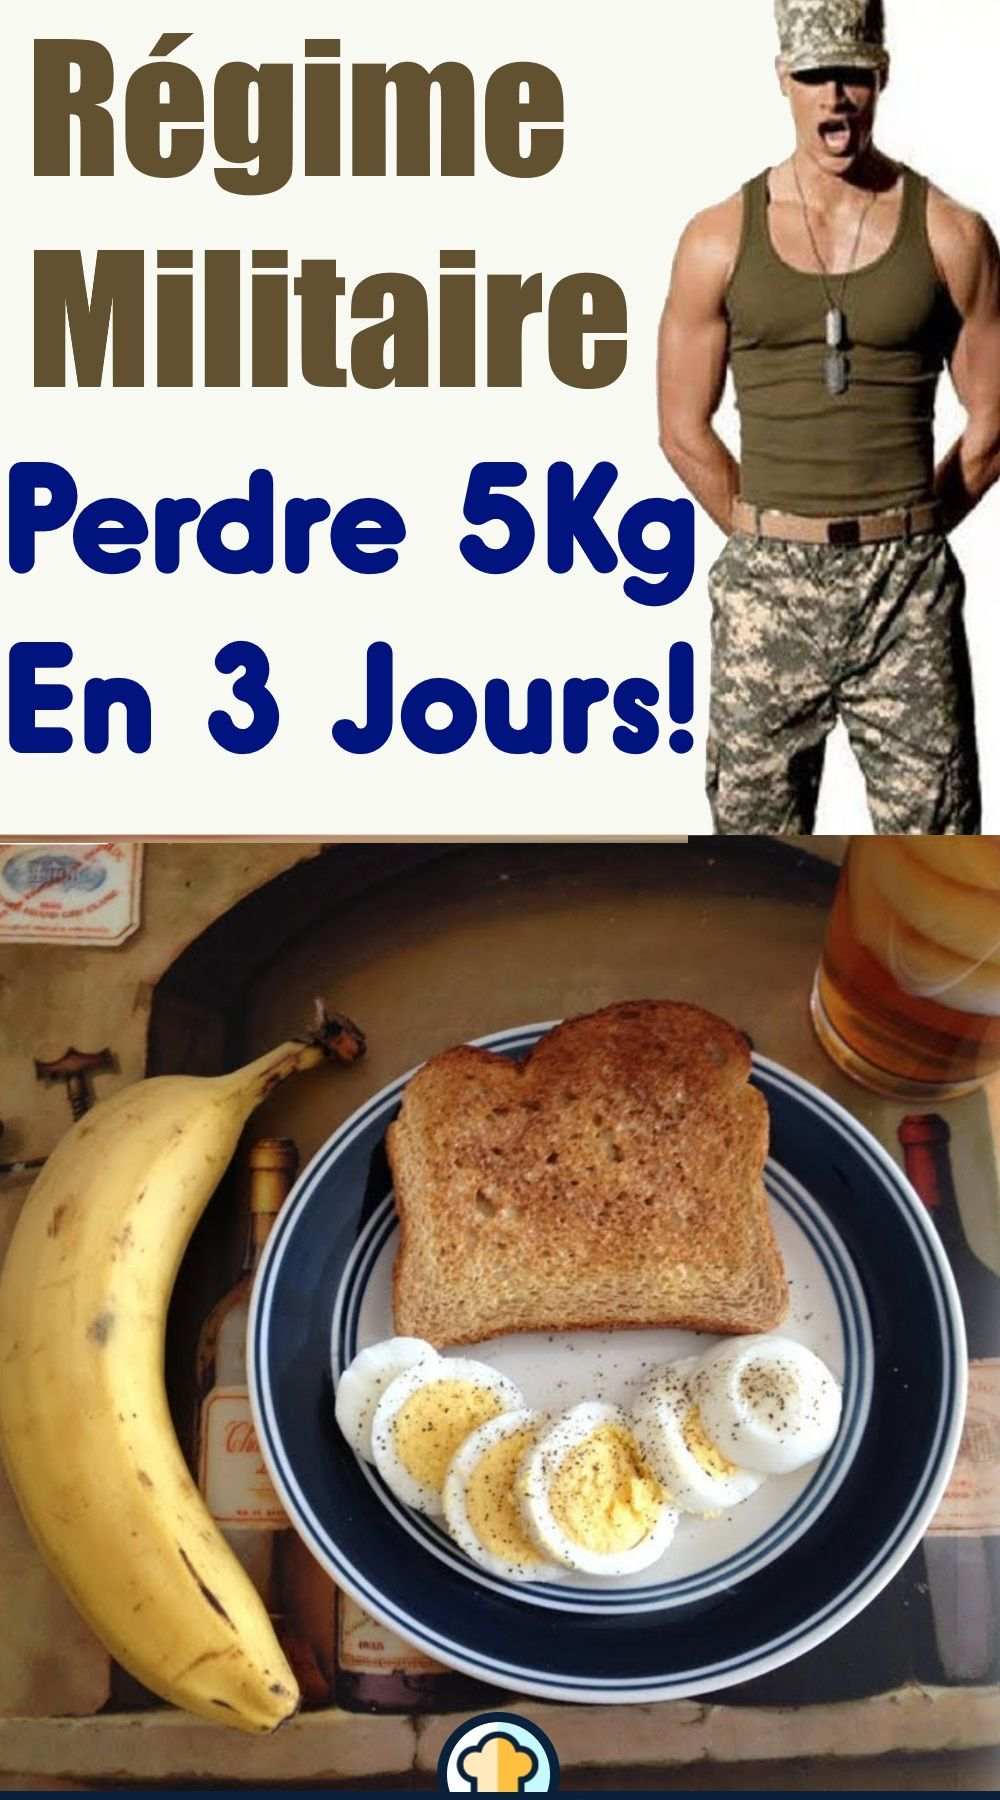 Photo of Military Diet: Lose 5Kg in 3 Days!